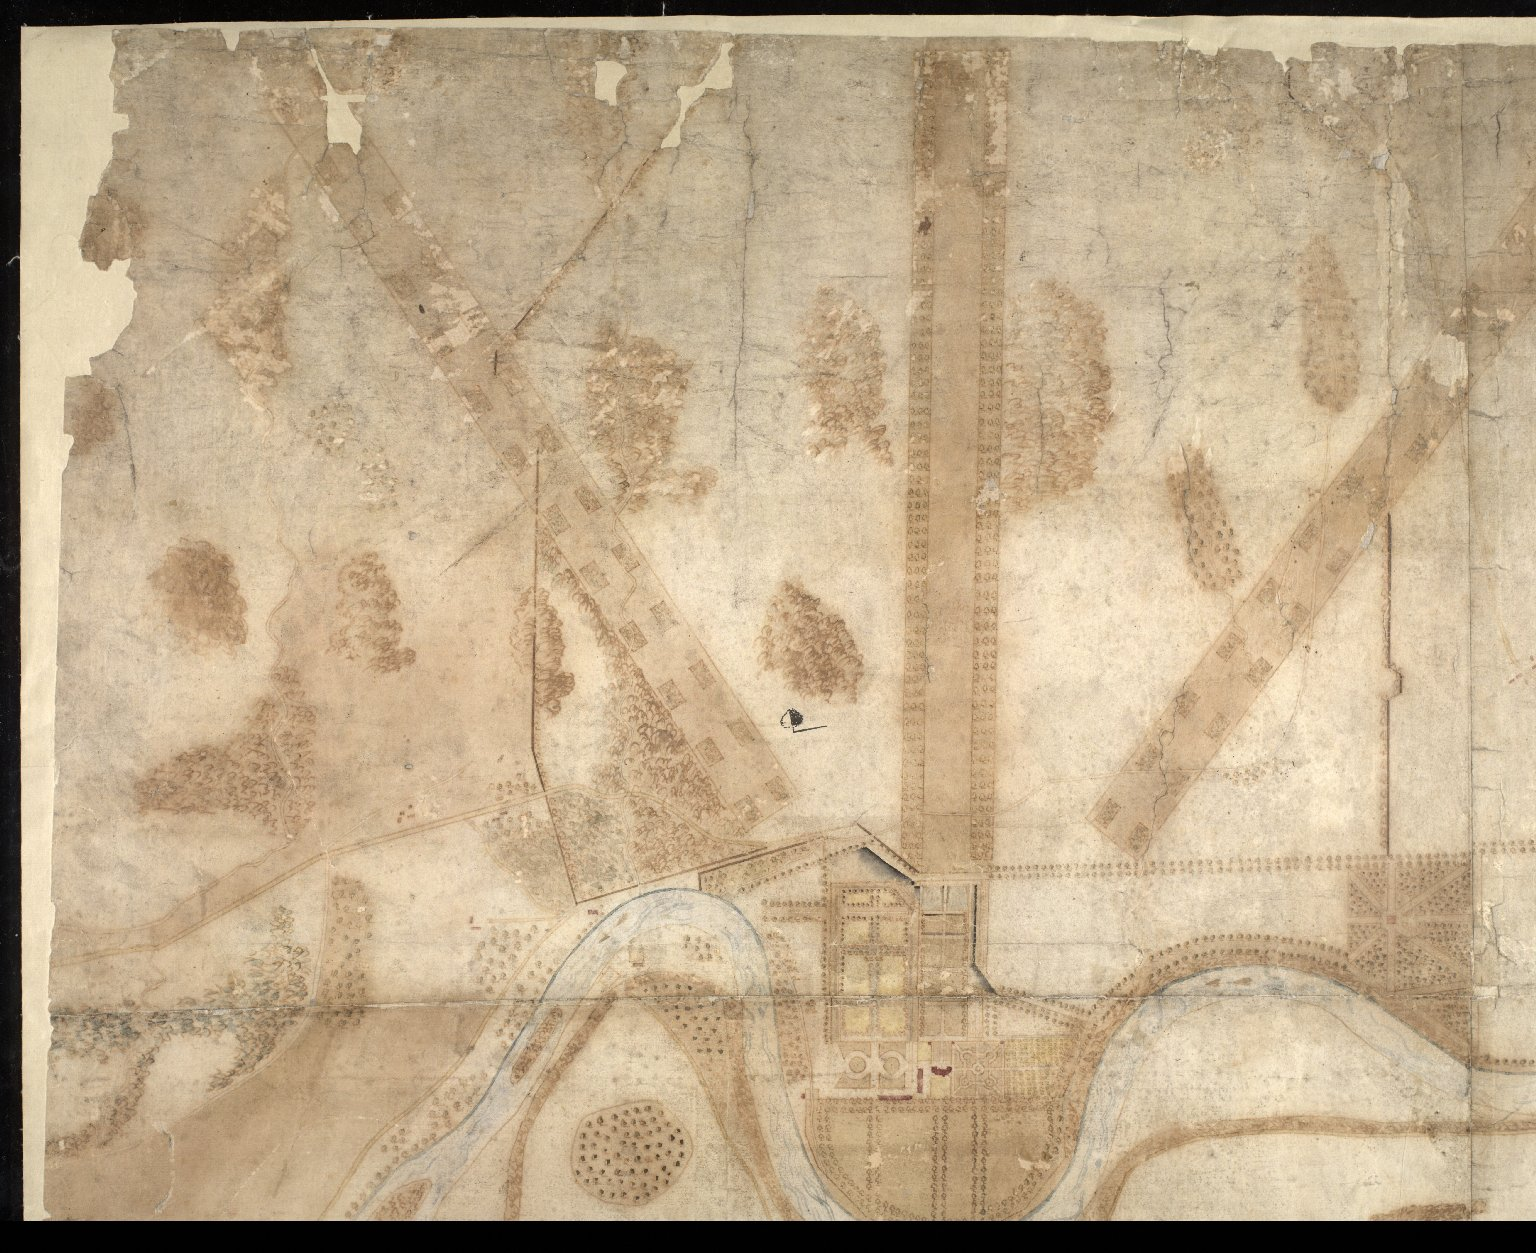 A Plan and Survey of the Gardens of Taymouth [Castle] and County Adjacent. An. 1720. [1 of 4]